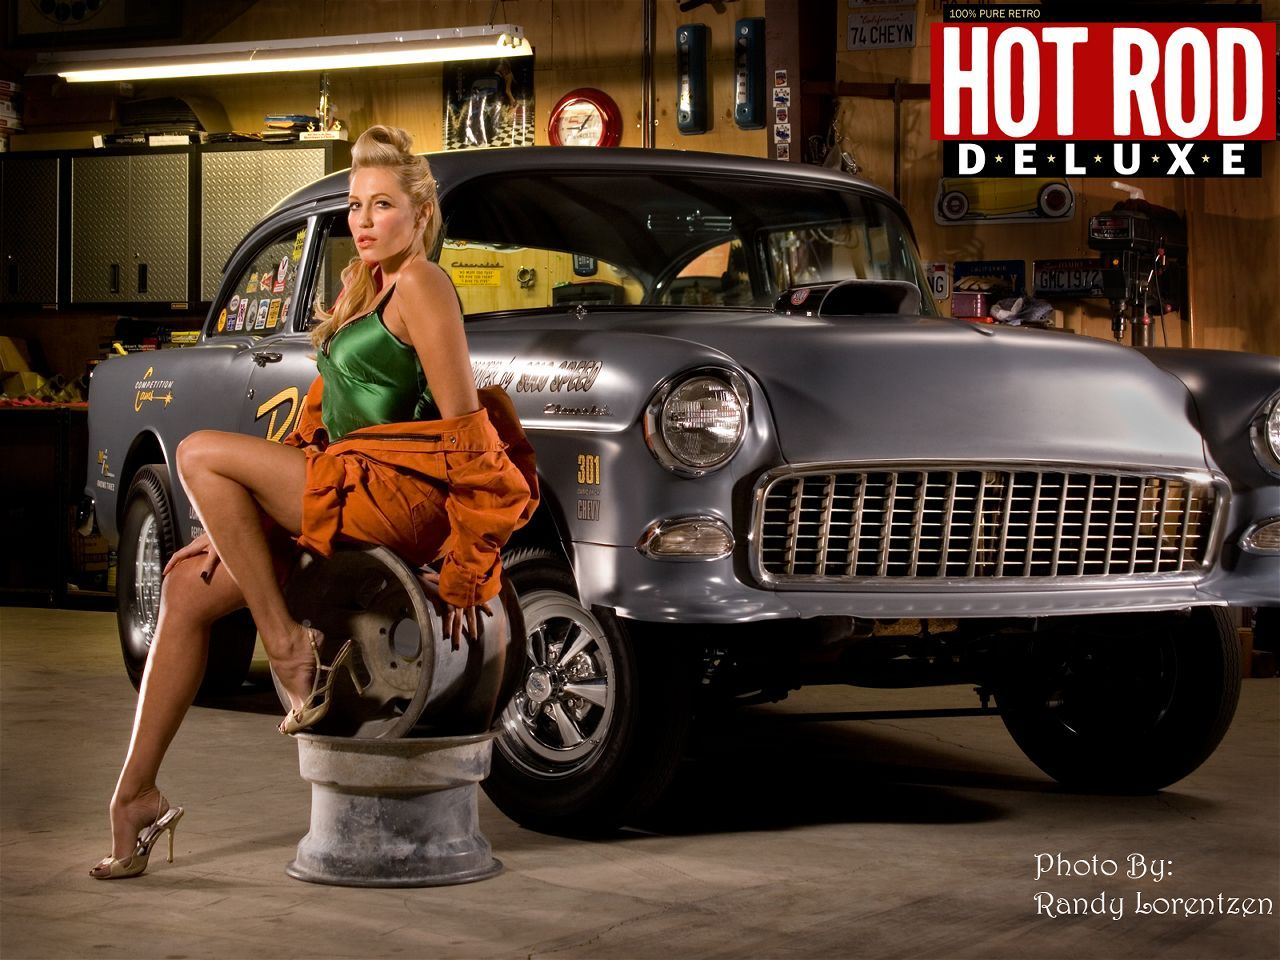 Hot Rod Deluxe Randy Lorentzen Pinups Pinterest Cars